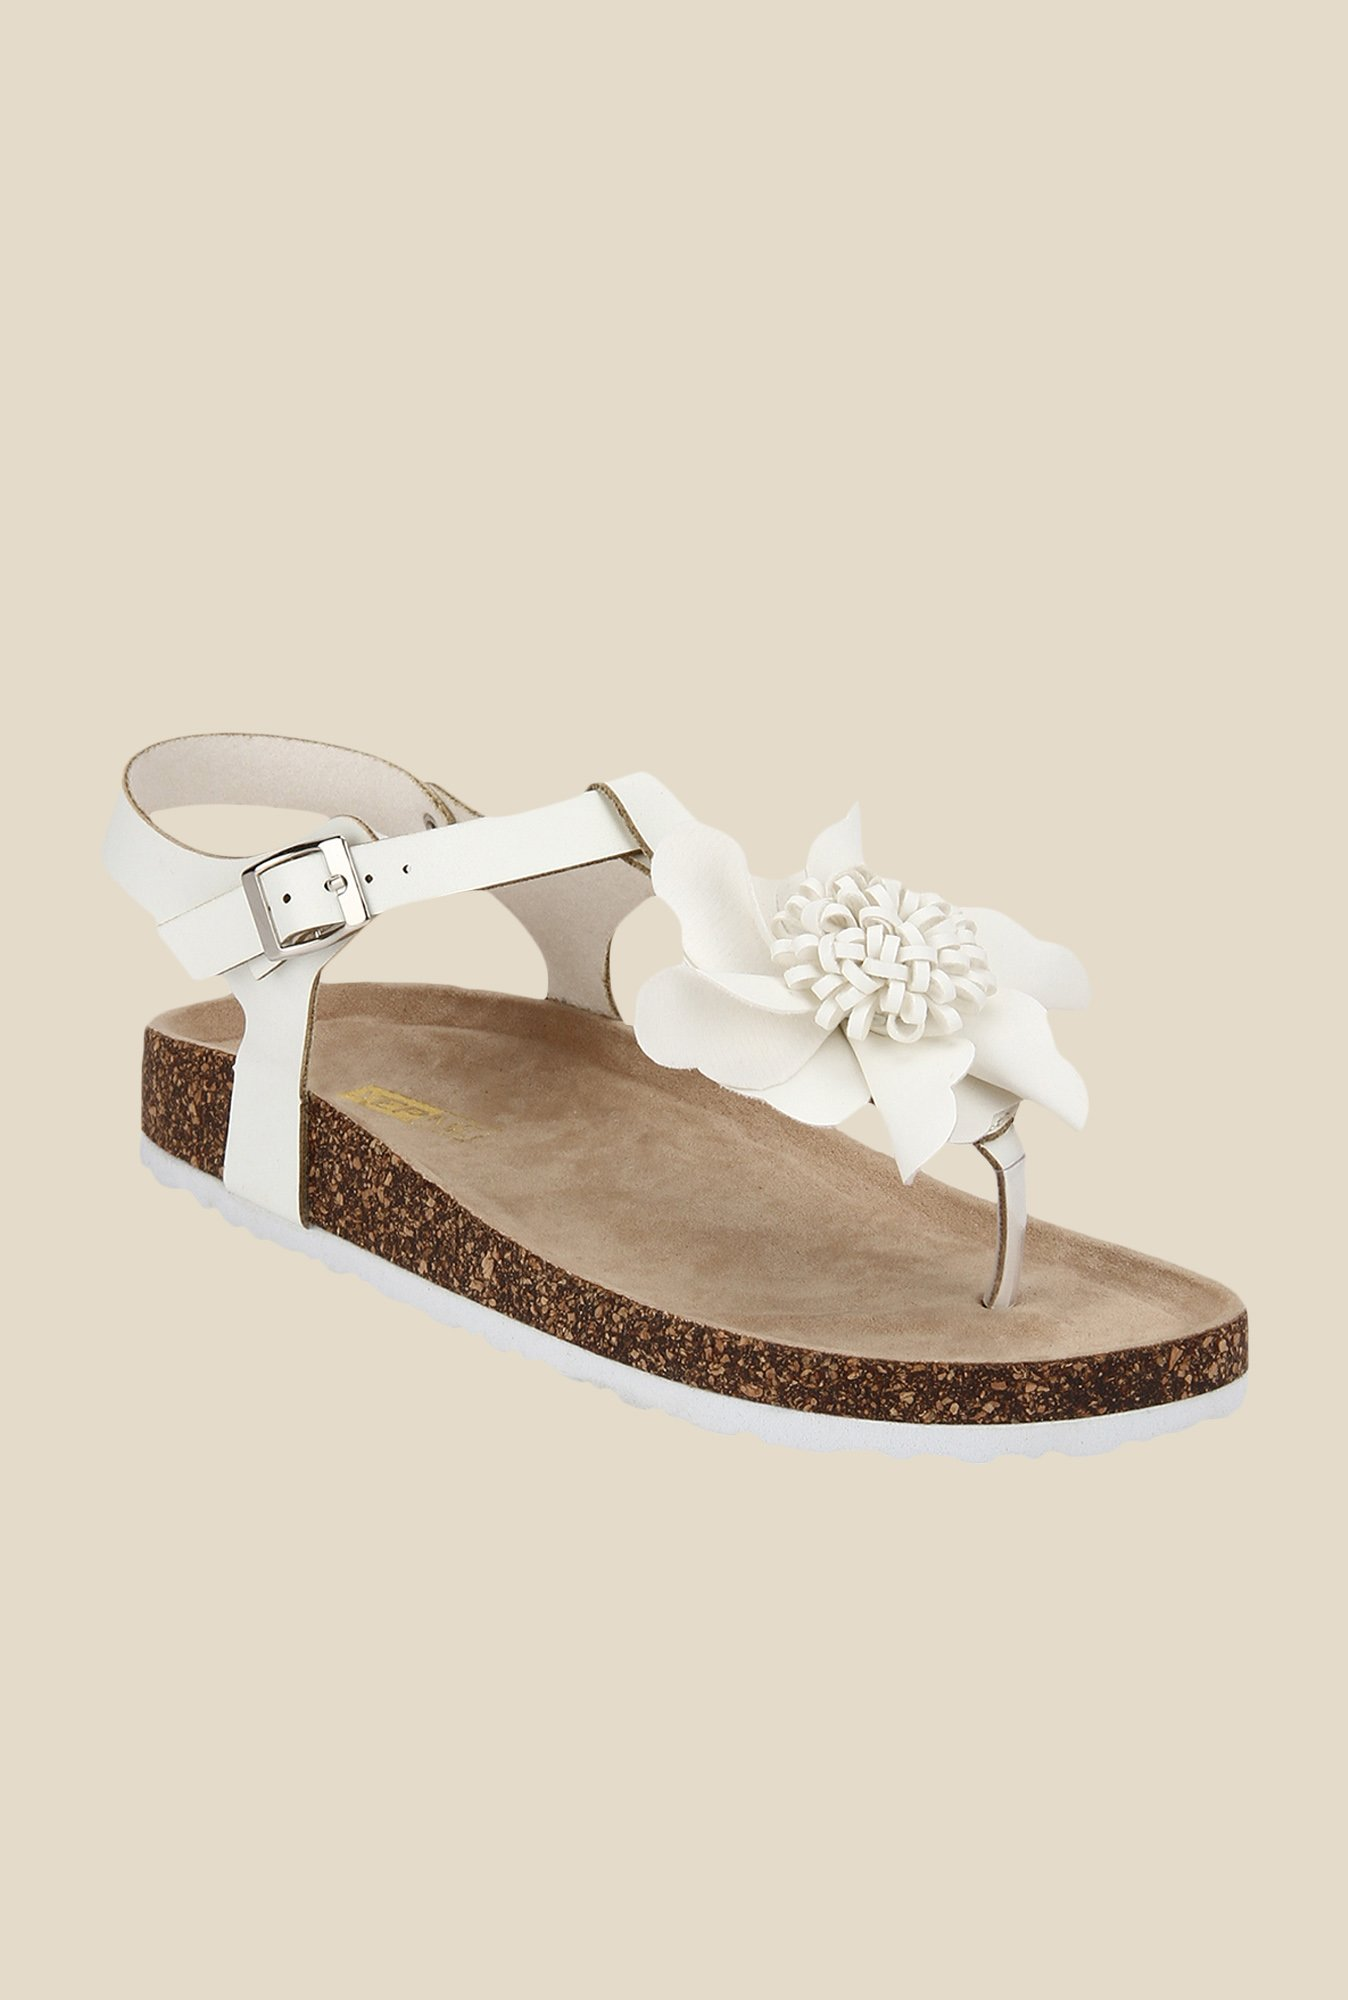 Yepme White Ankle Strap Sandals